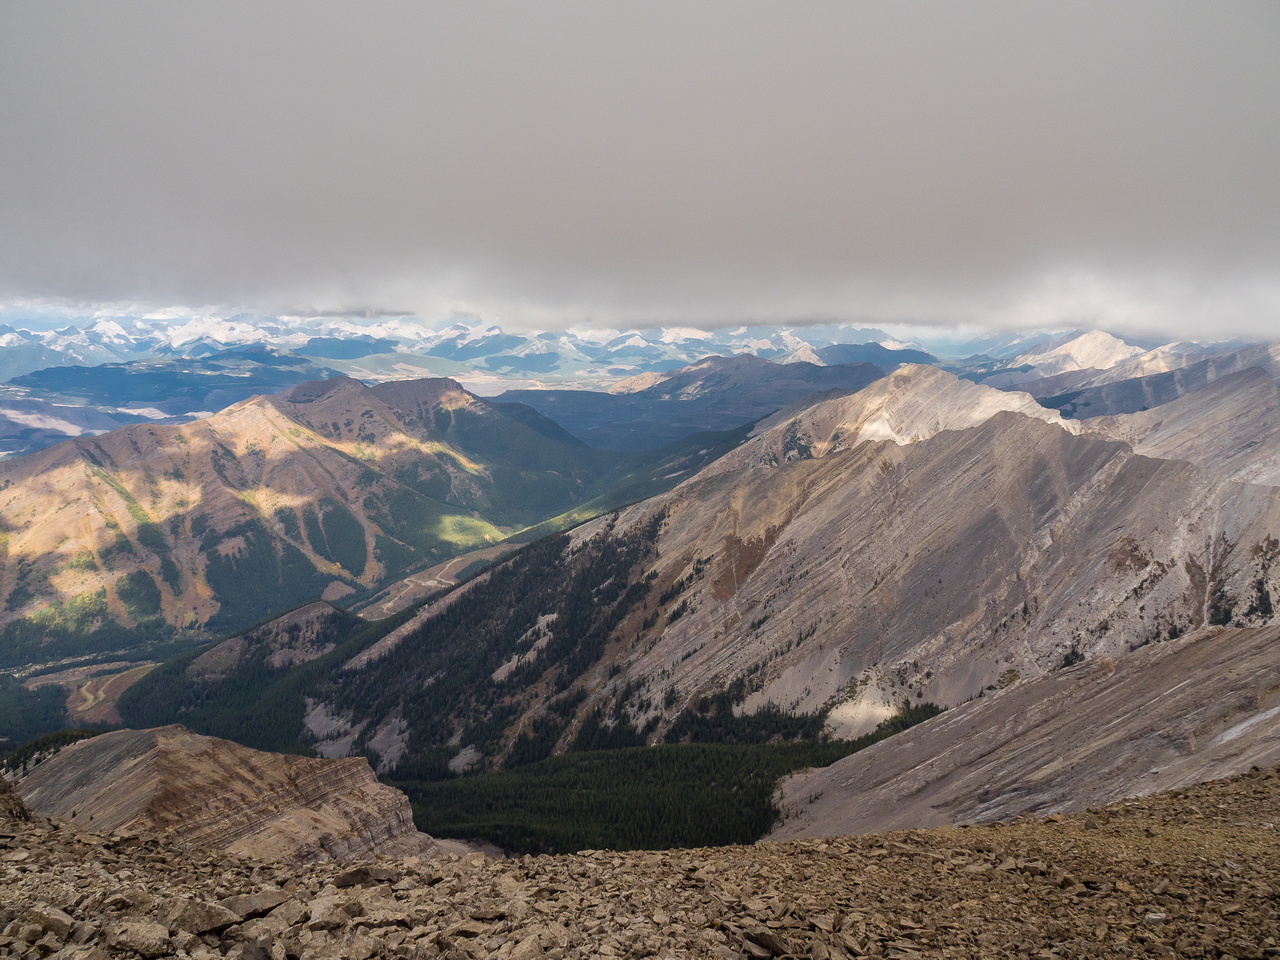 Looking north off the summit towards O'Rourke W3 at right and Greenhill Peak at left and Turnbull at distant center.